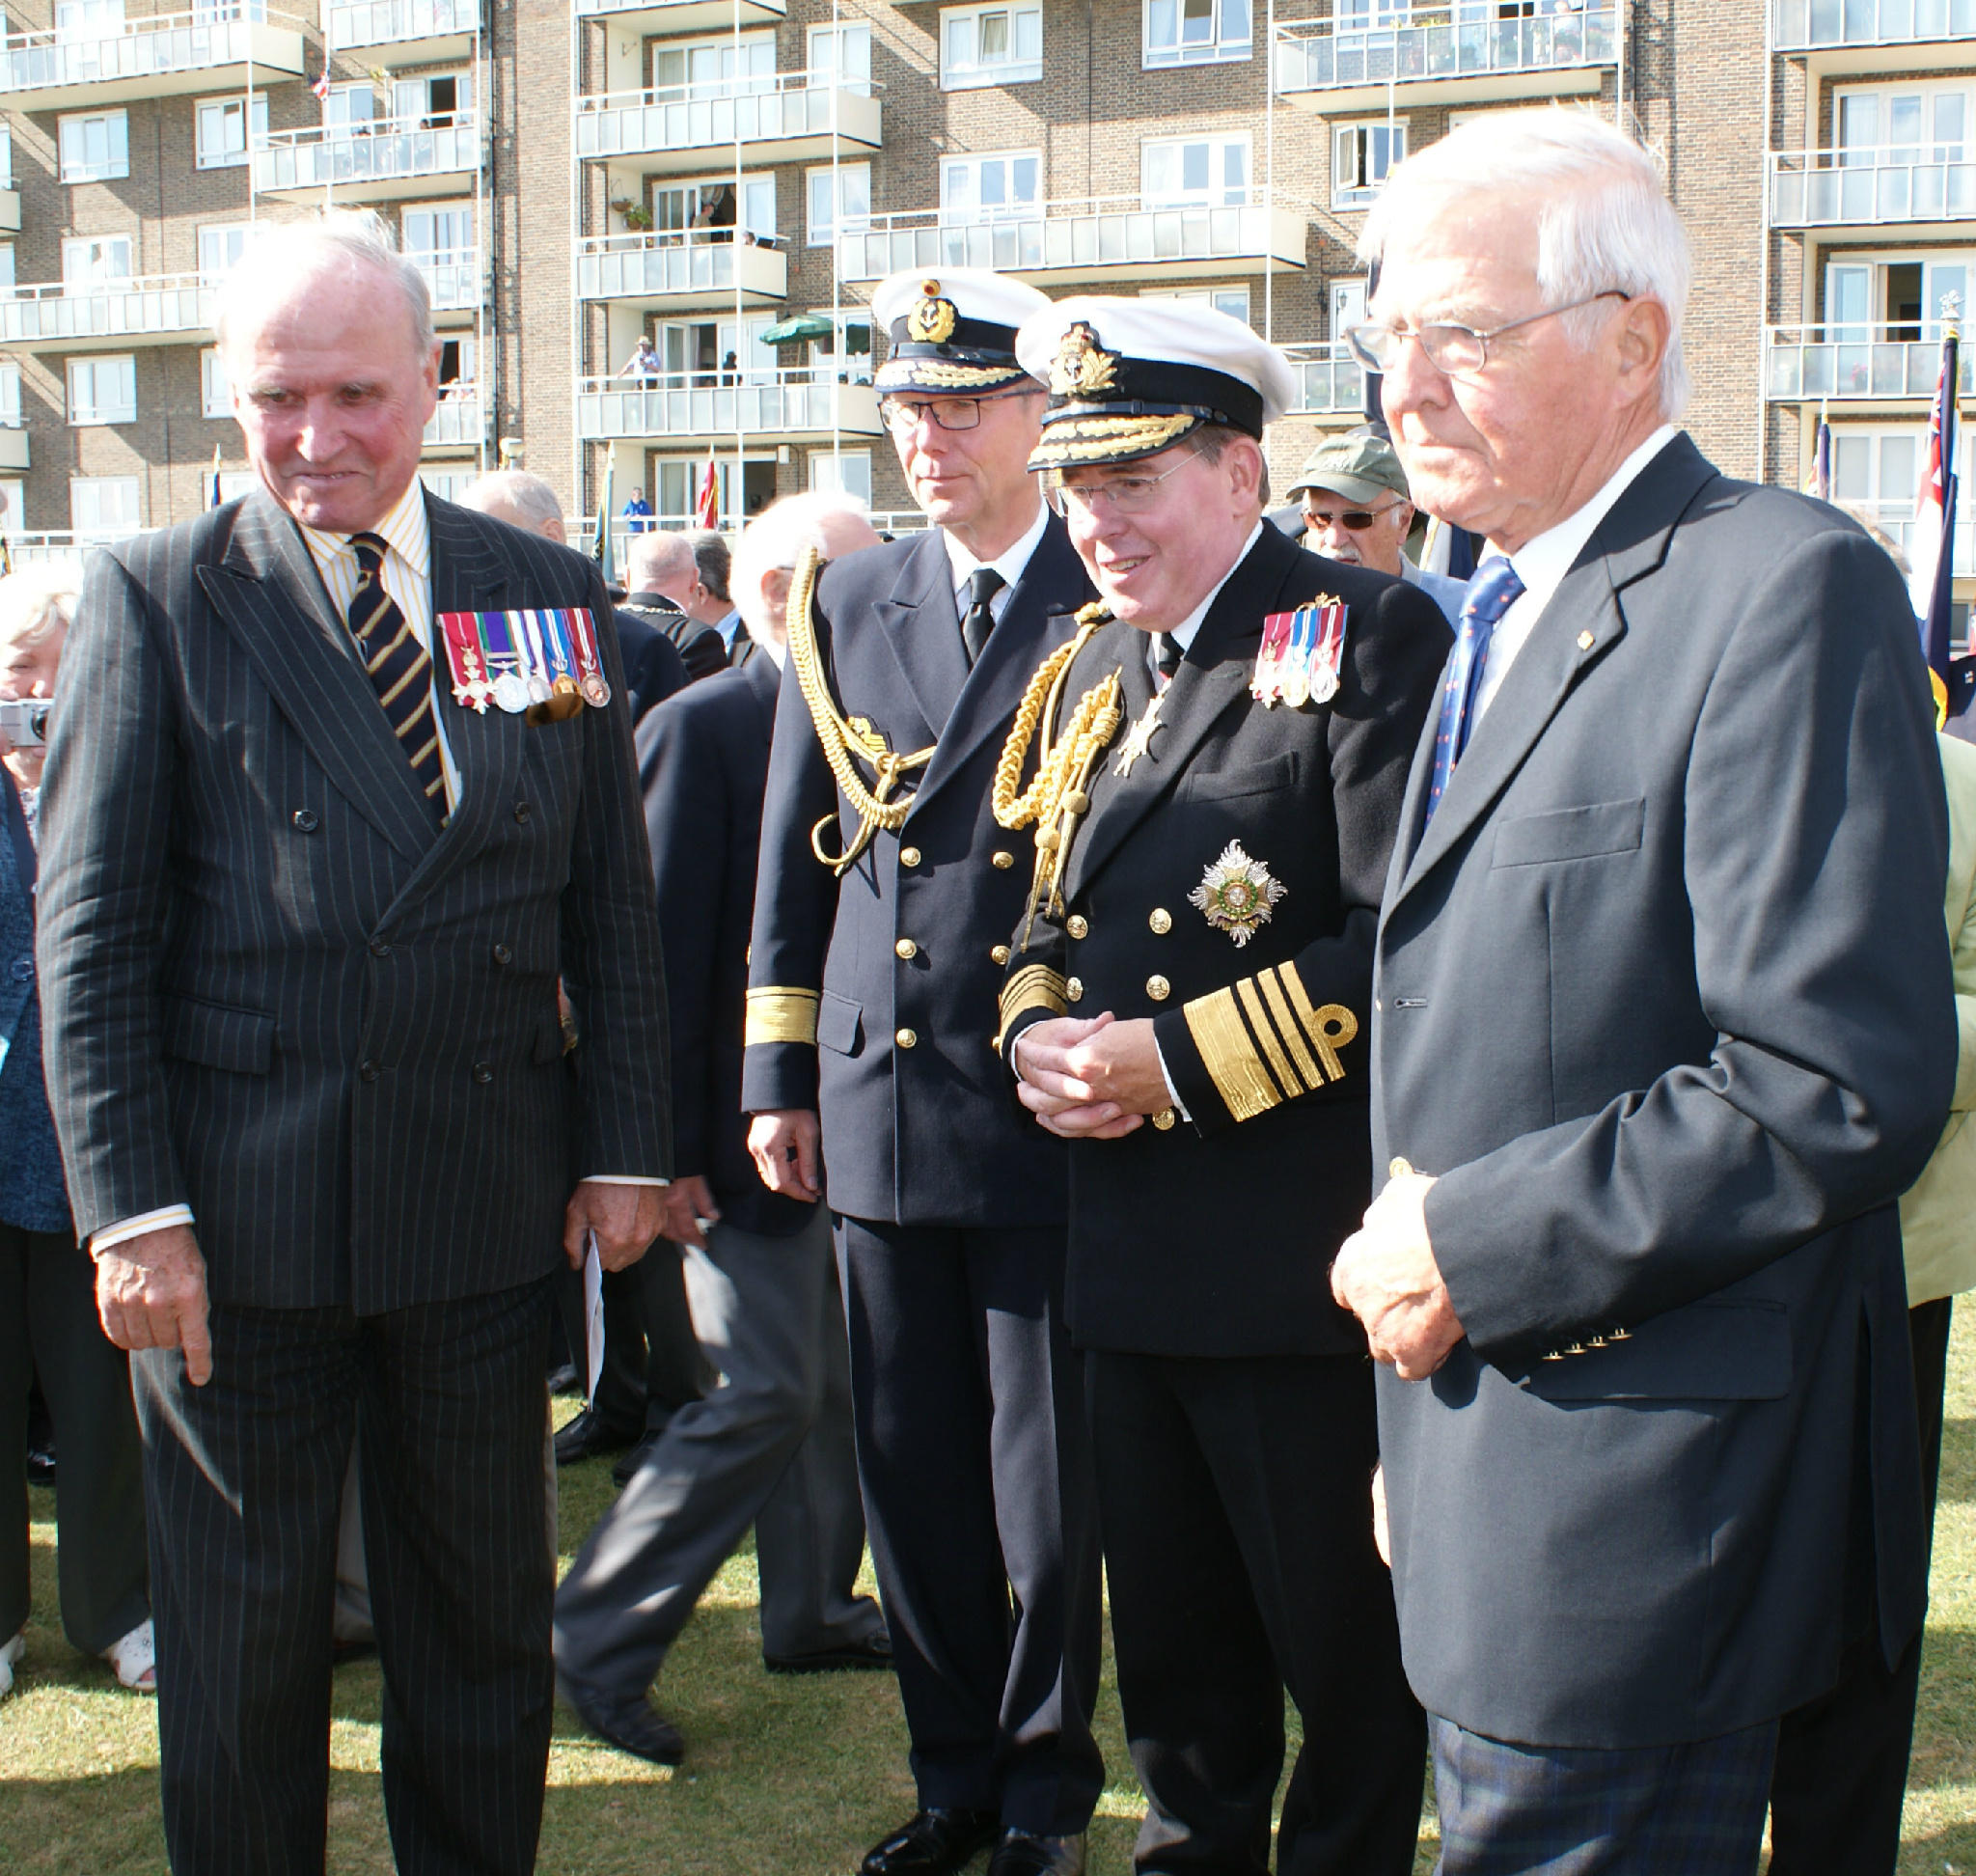 RT @ChannelDash: First Sea Lord reviews the memorial with the sons of Admirals Ramsay and Ciliax a poignant moment of Reconciliation http://t.co/ysKLkWNz